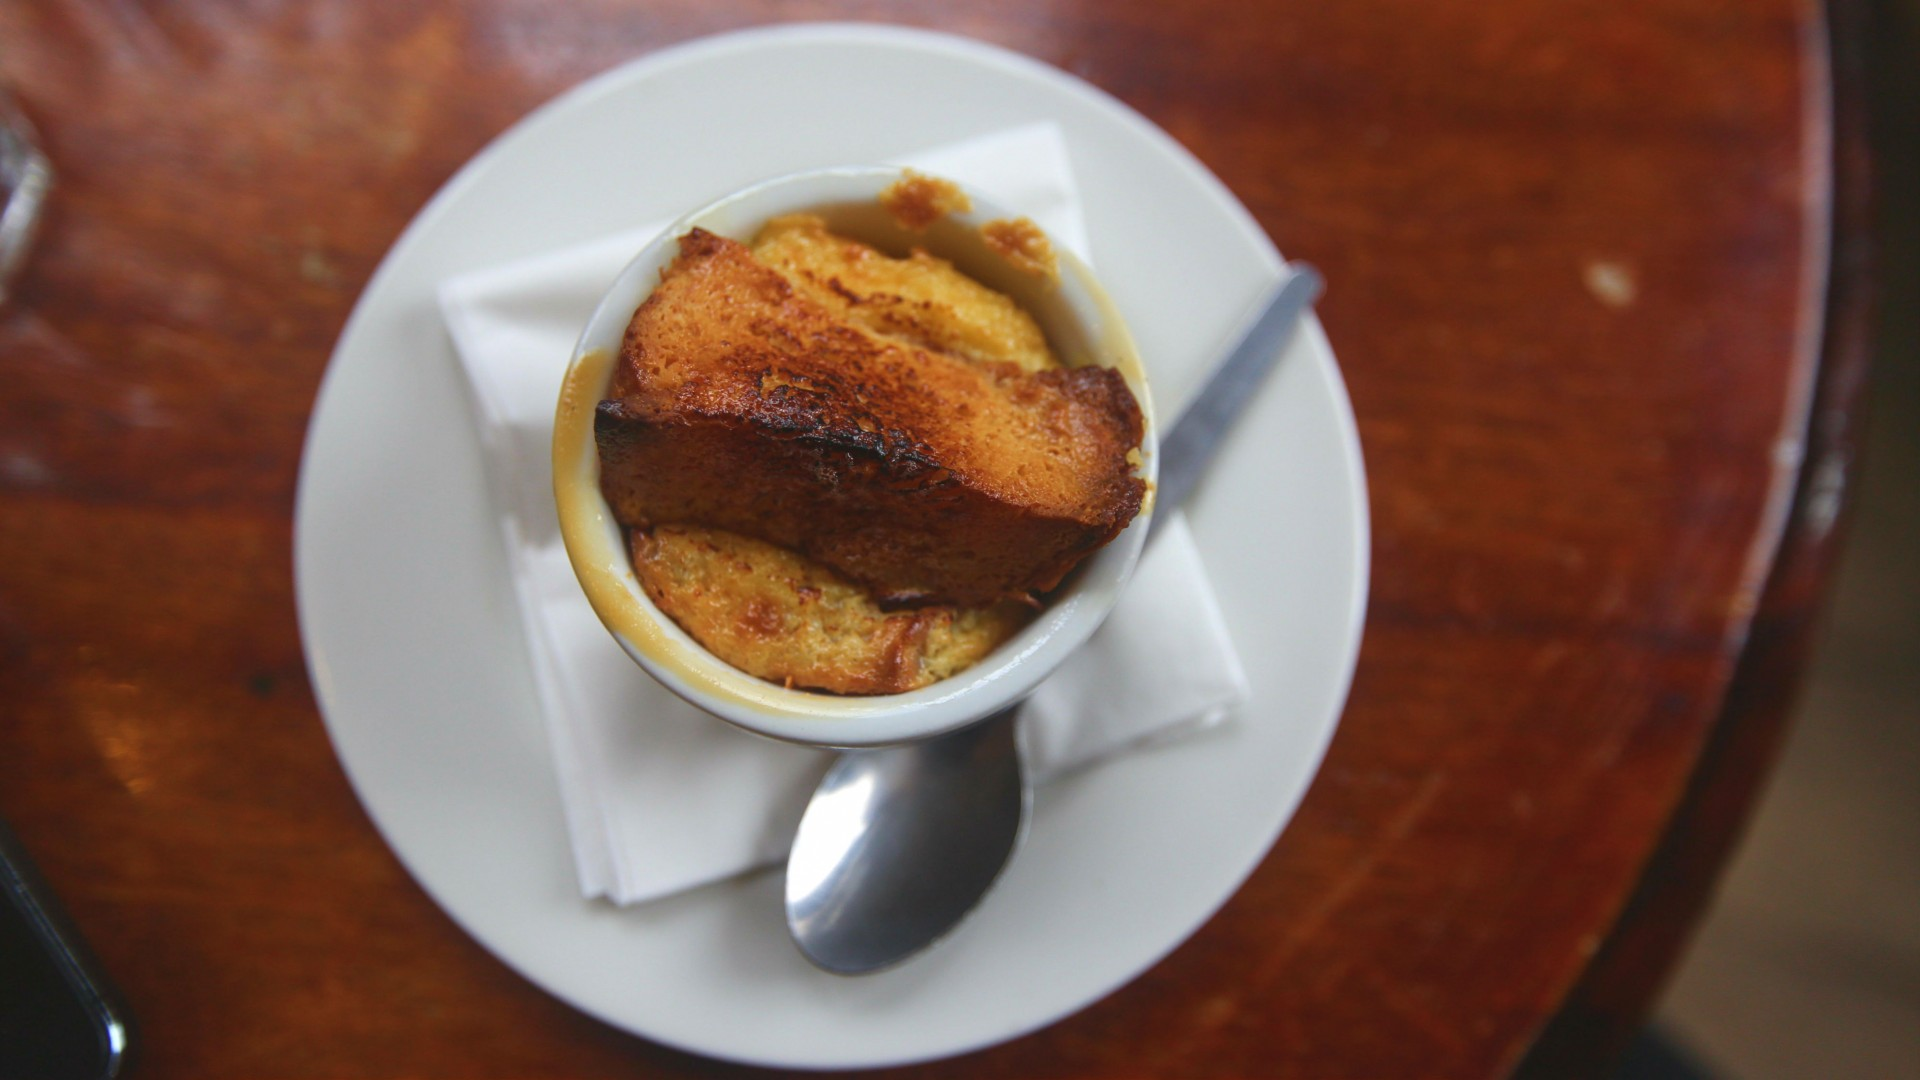 Bread and Butter Pudding at the English Restaurant